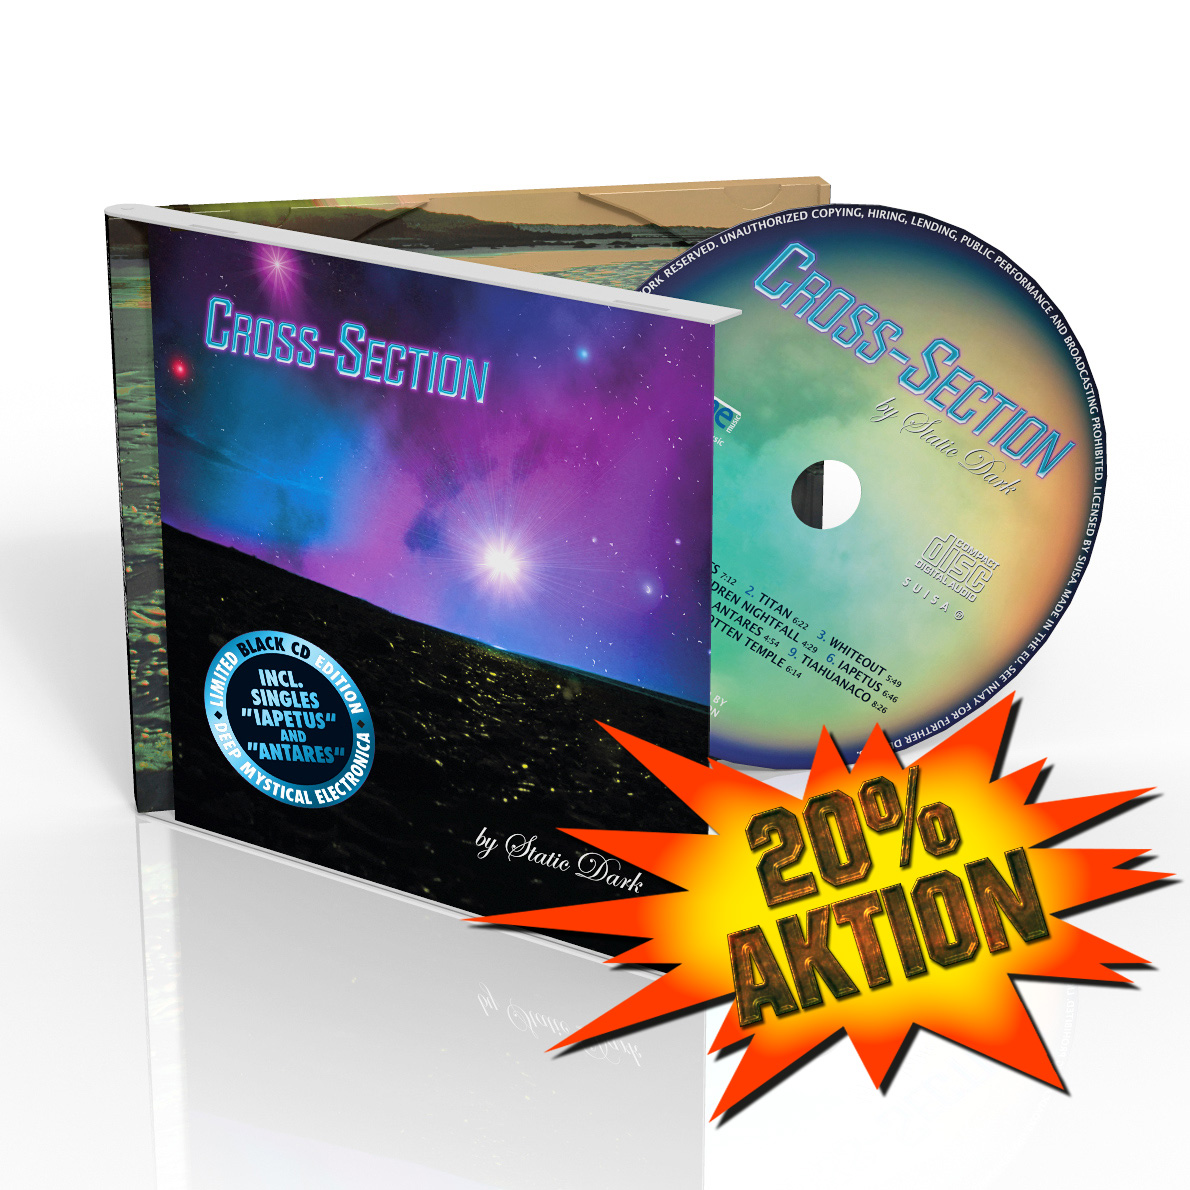 Cross-Section Limited Black CD Edition